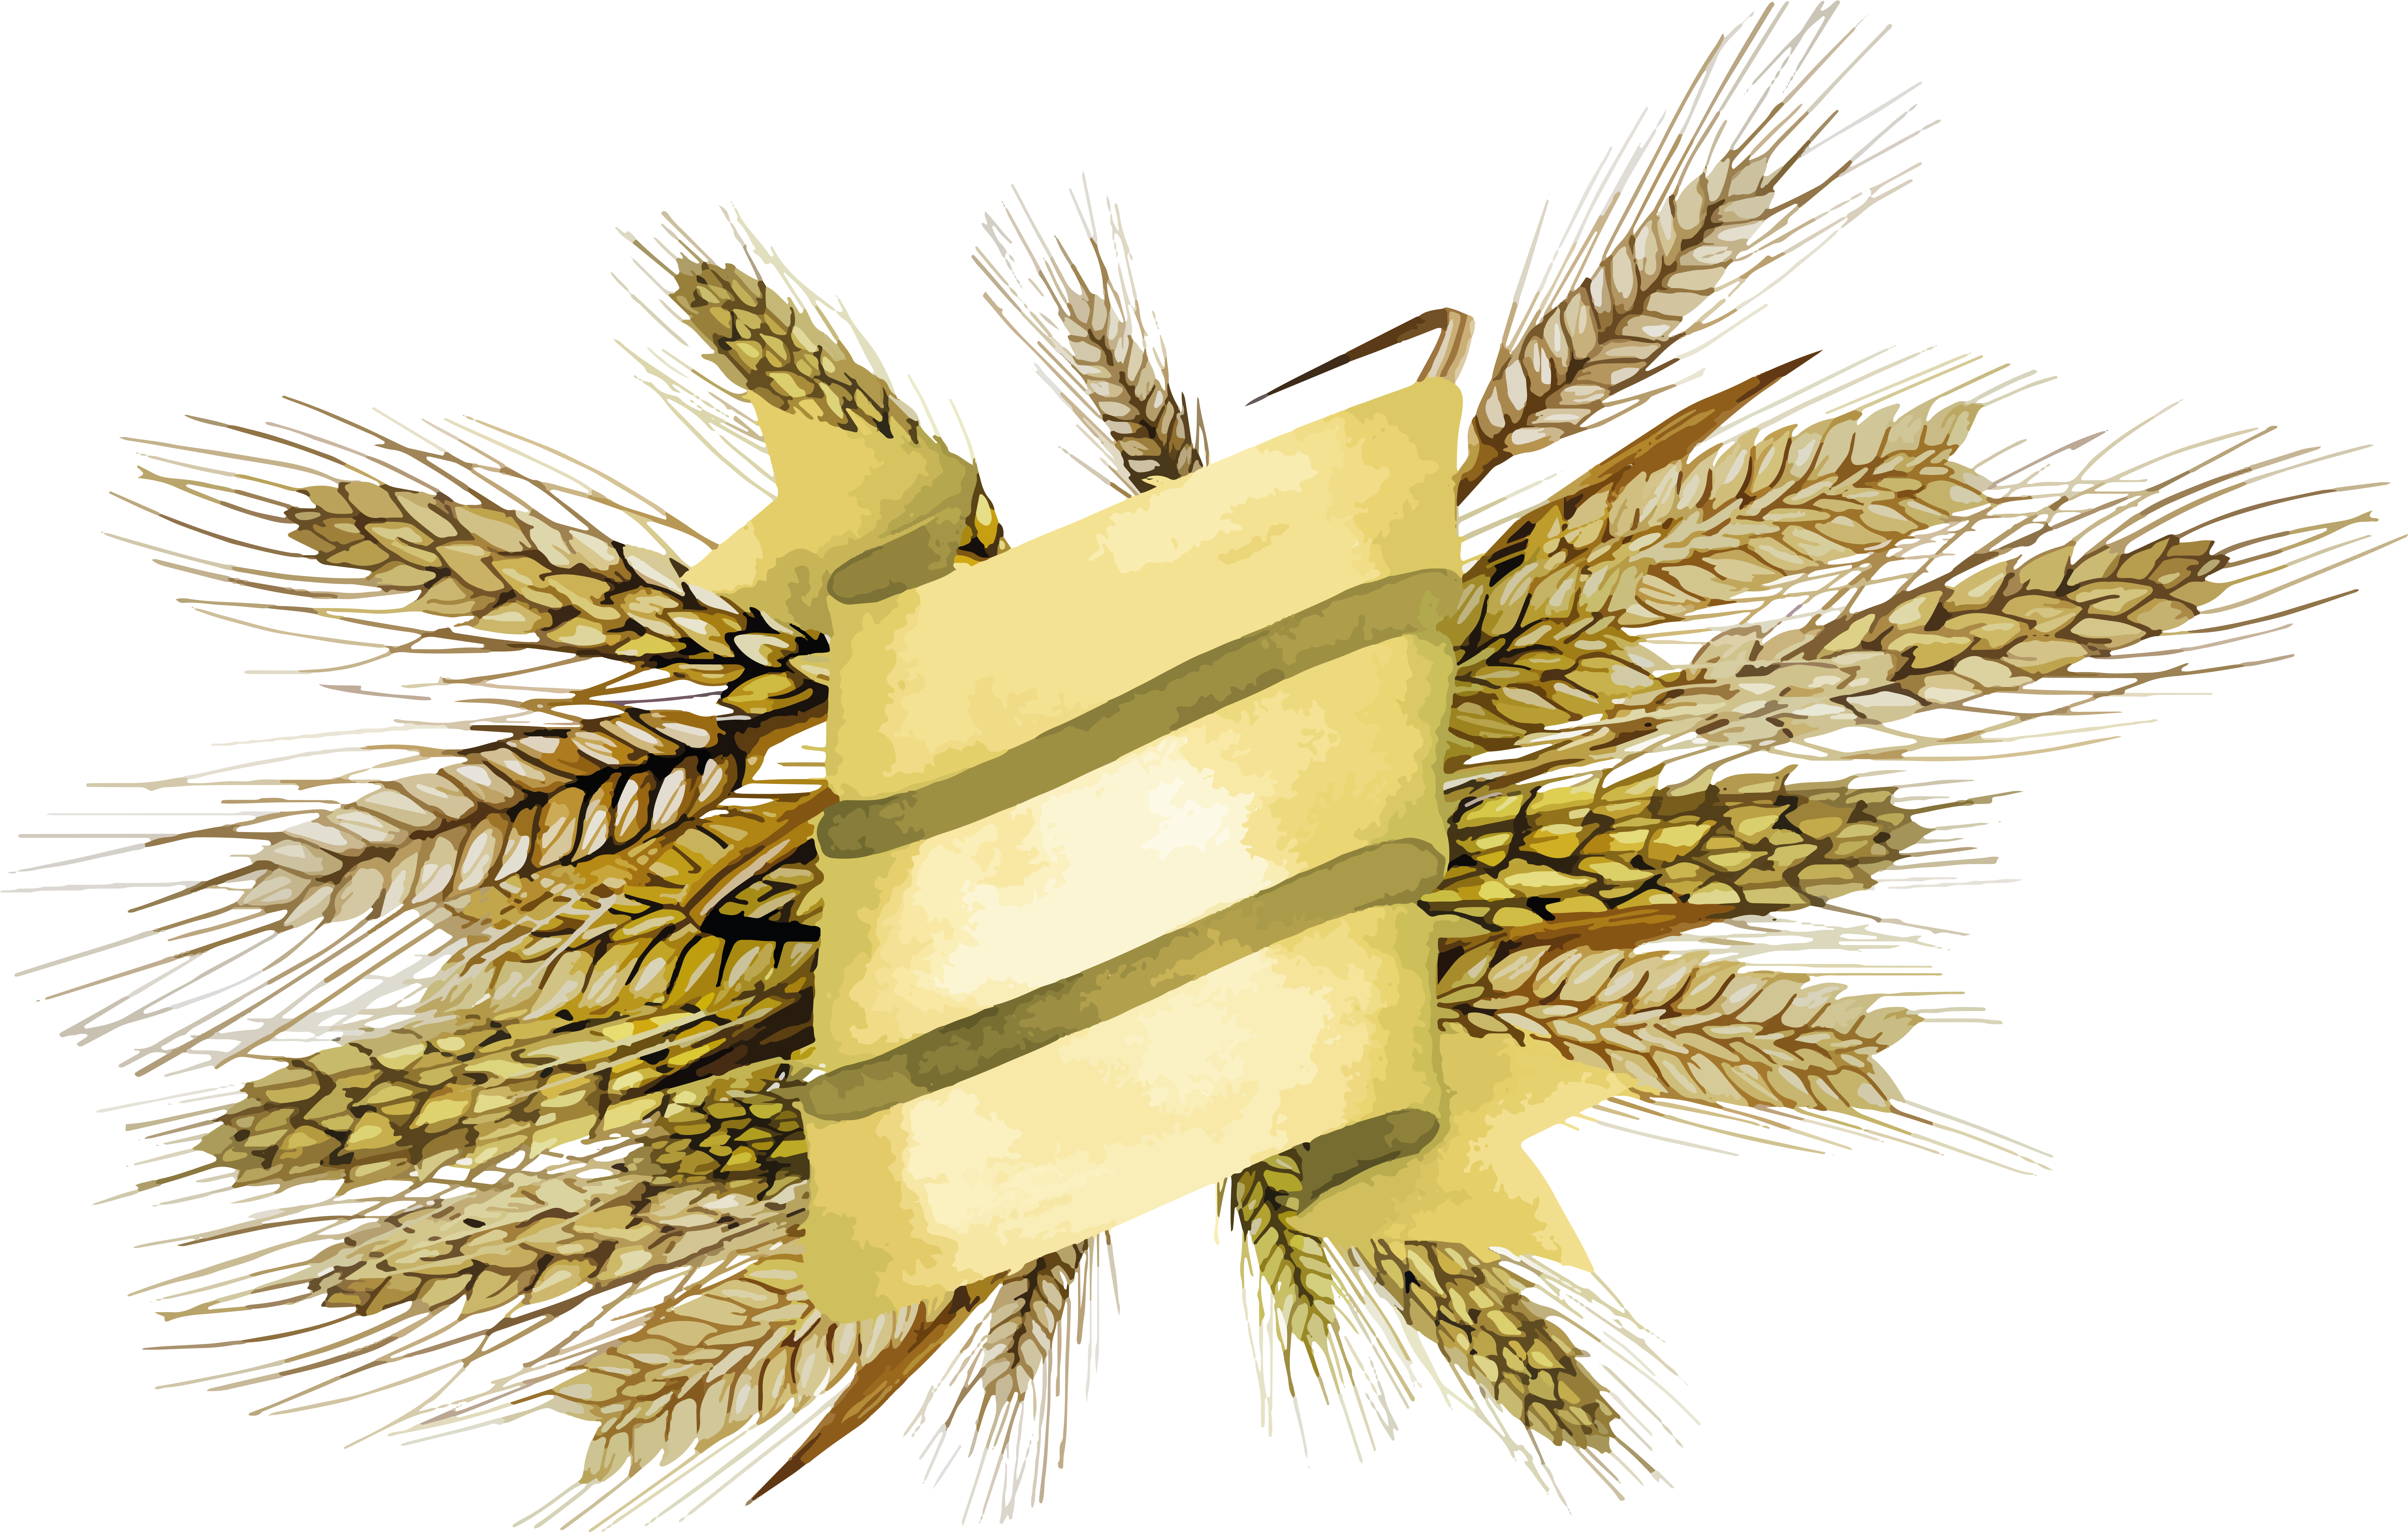 Png images free download. Wheat clipart feather